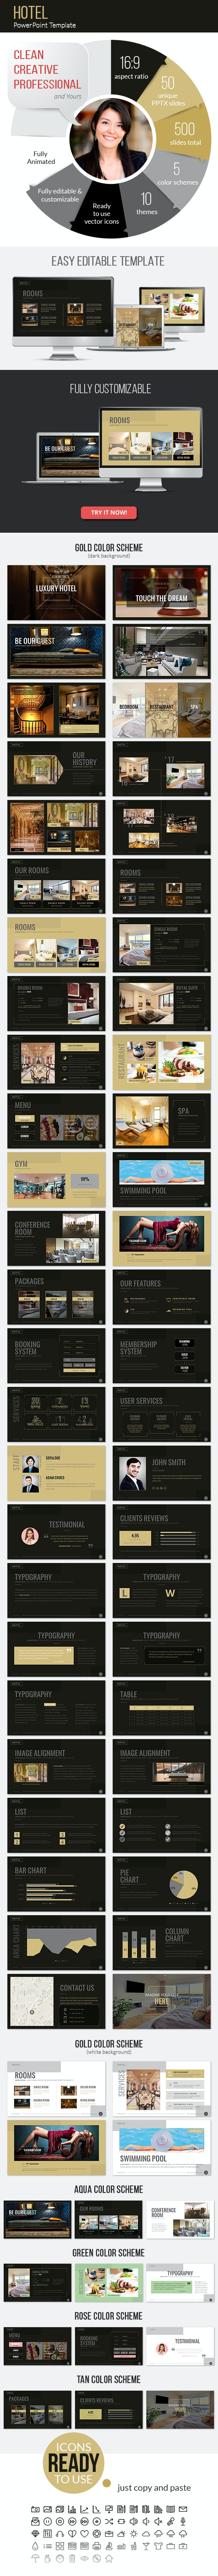 Hotel California PowerPoint Presentation Template - Business PowerPoint Templates